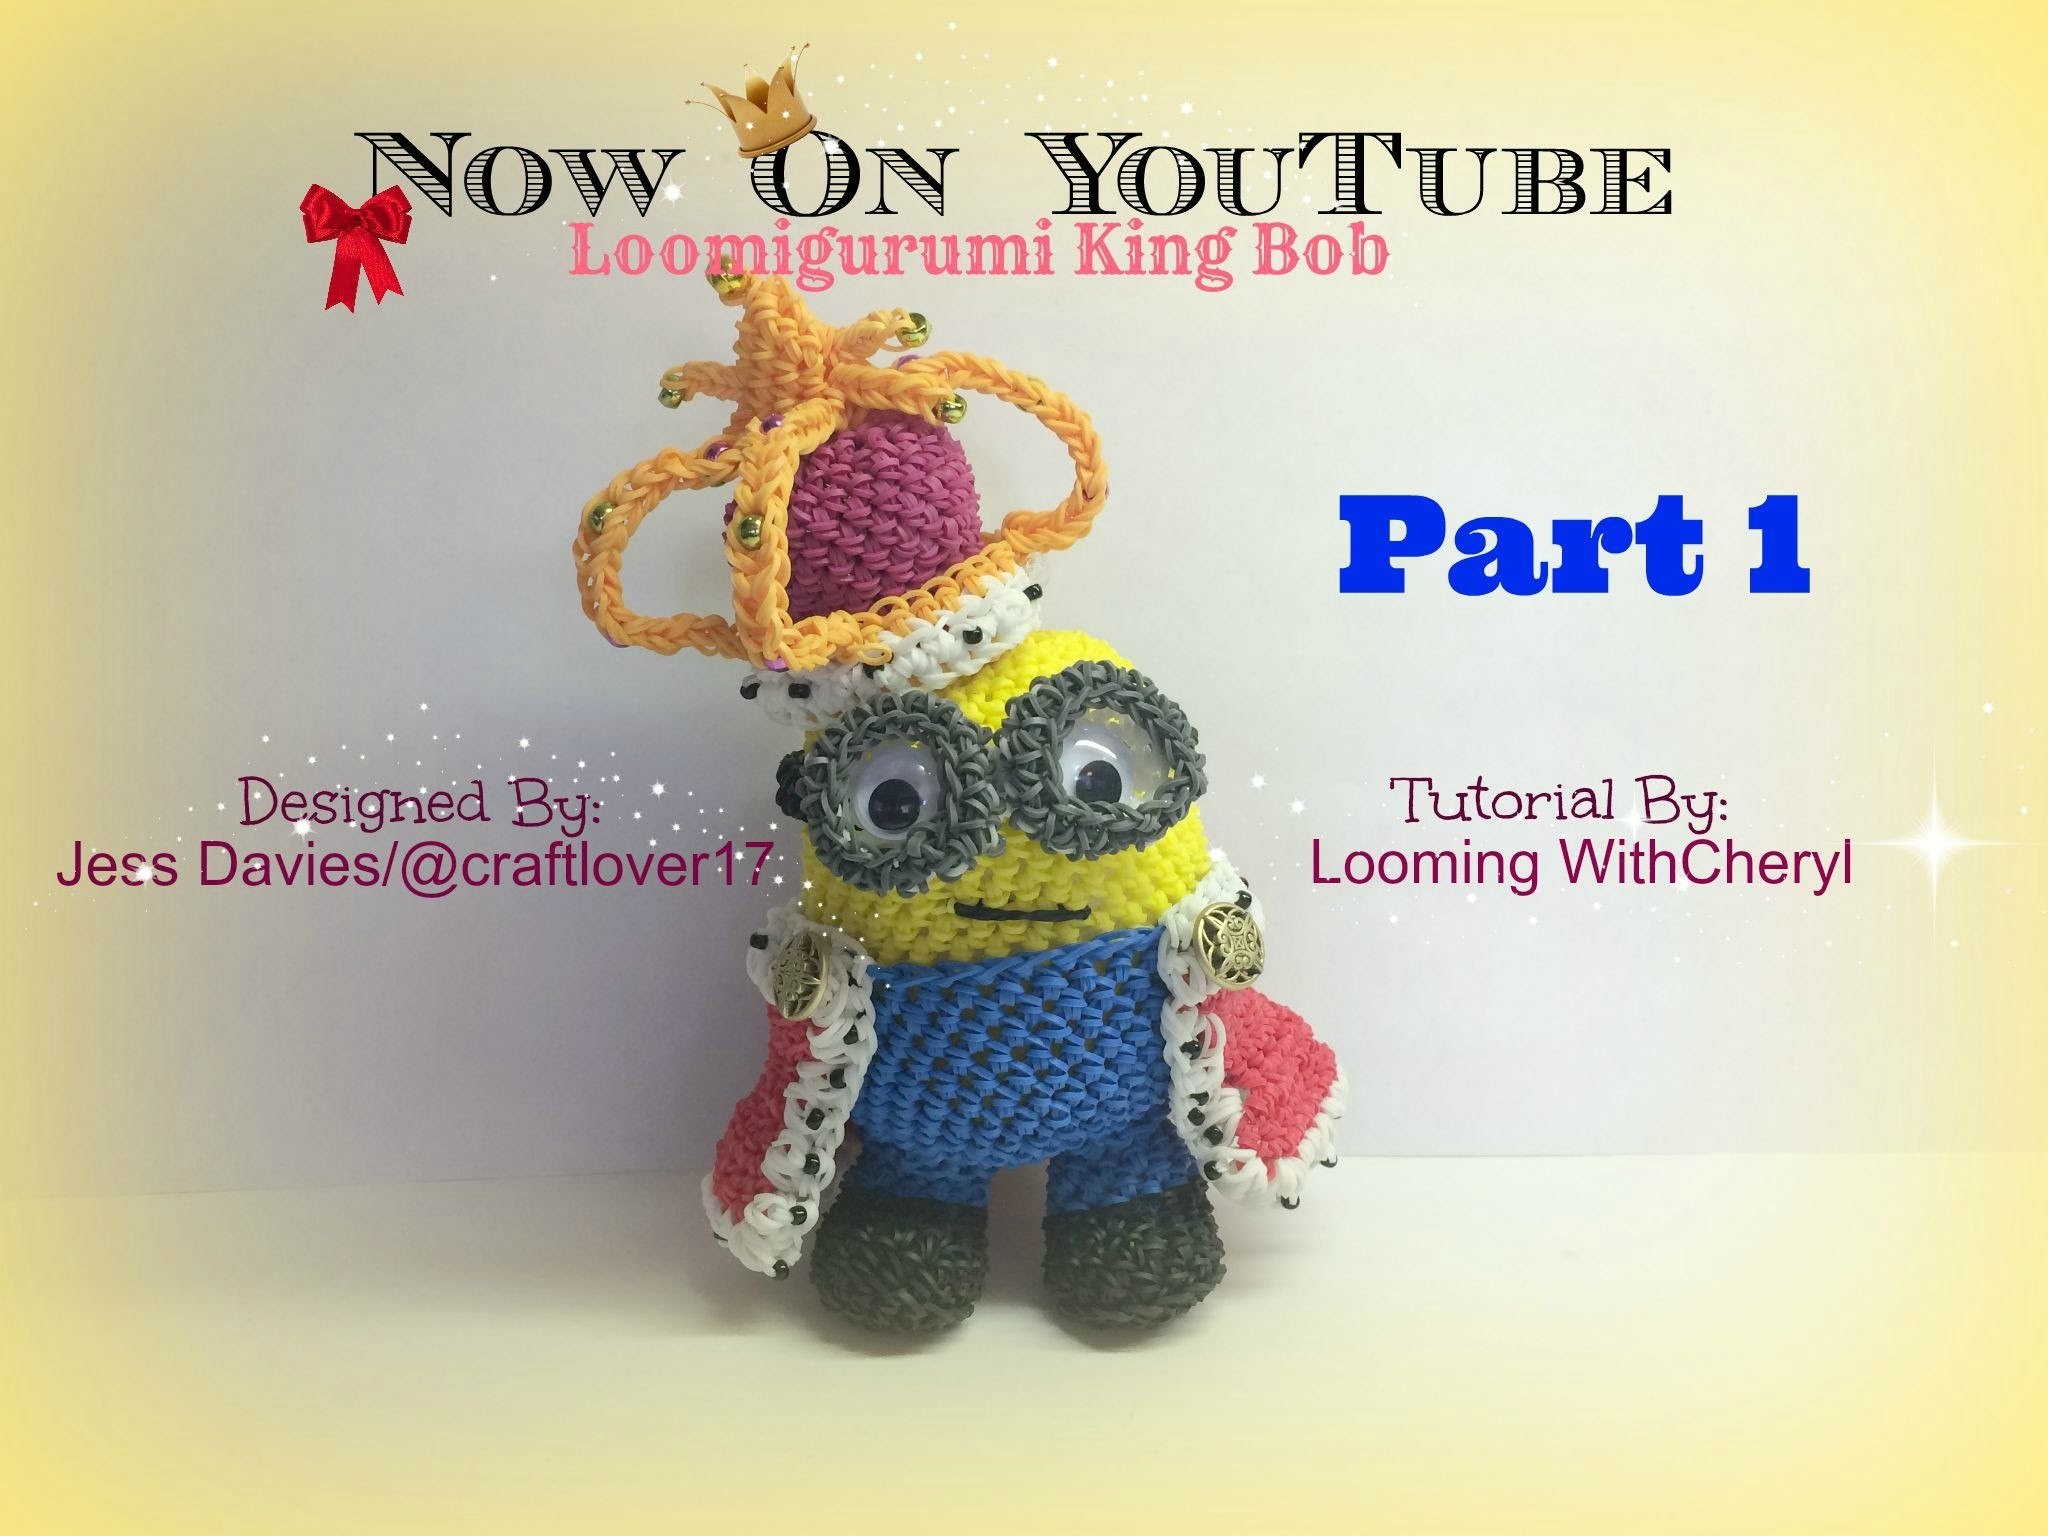 Rainbow Loom King Bob Minion - Part 1 of 4 Loomigurumi. Amigurumi - Looming WithCheryl